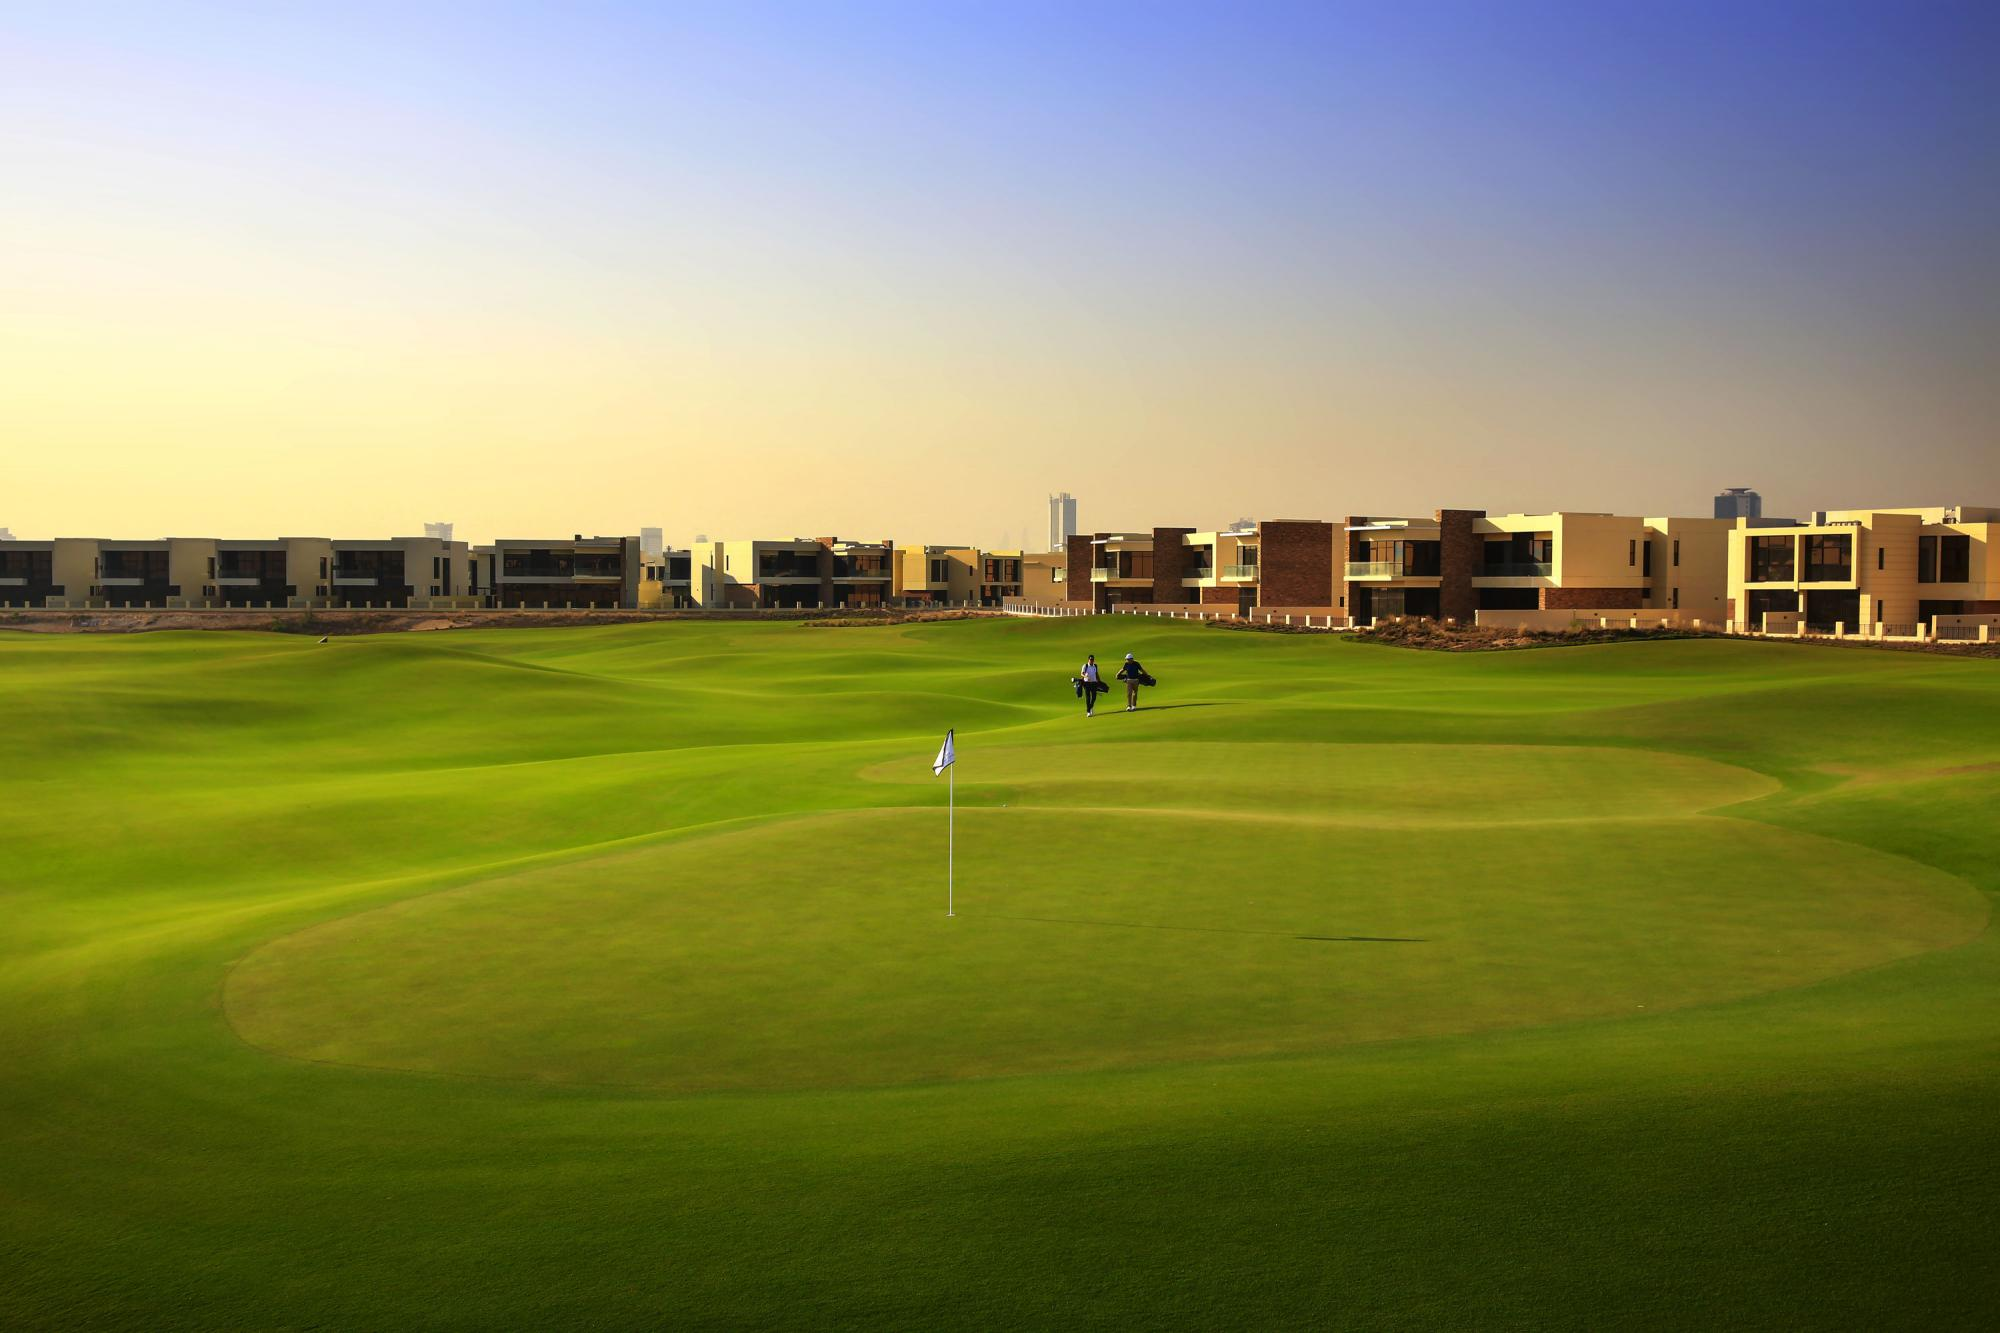 Trump International Golf Club Dubai hosts some of the finest golf course within Dubai